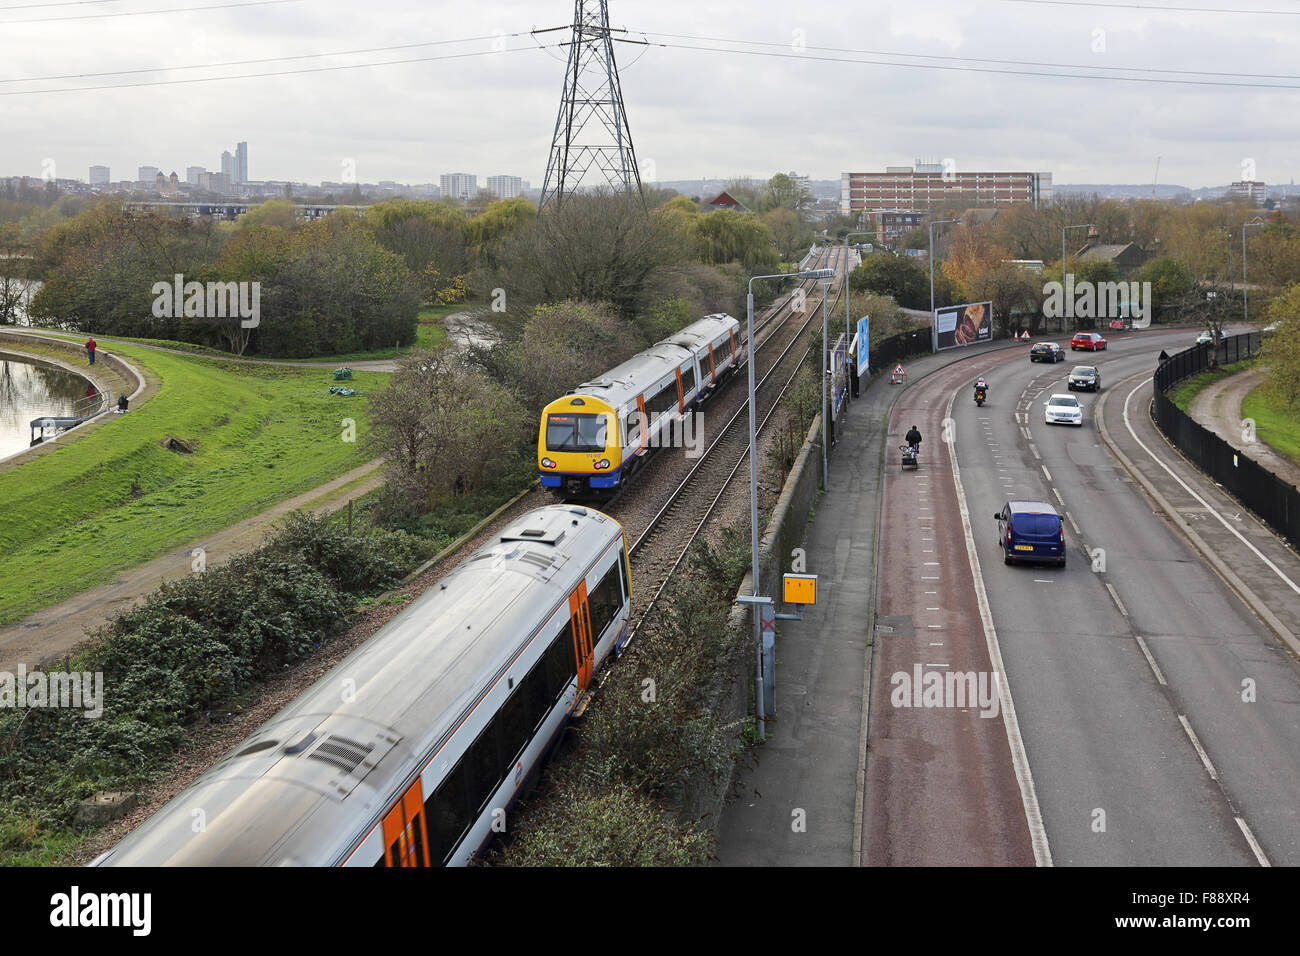 View of London Overground railway line in North London showing two trains and the adjacent road with bus lane and - Stock Image